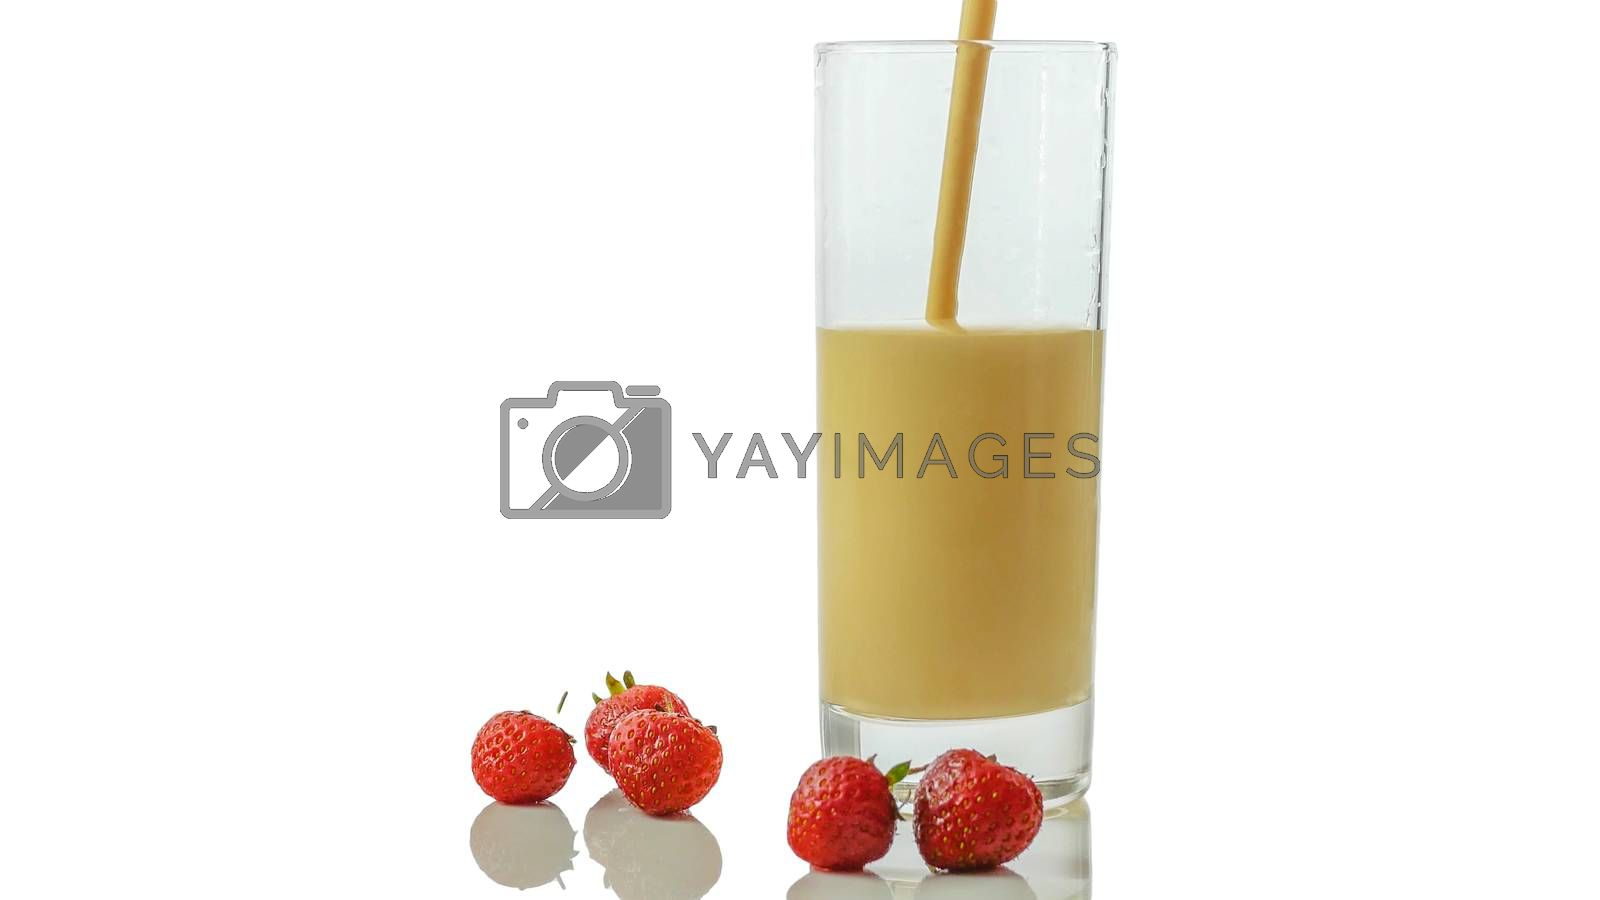 Royalty free image of Strawberry yogurt in a glass with fresh strawberries isolated on white,close-up,dairy product. by Andriii_Klapkoo